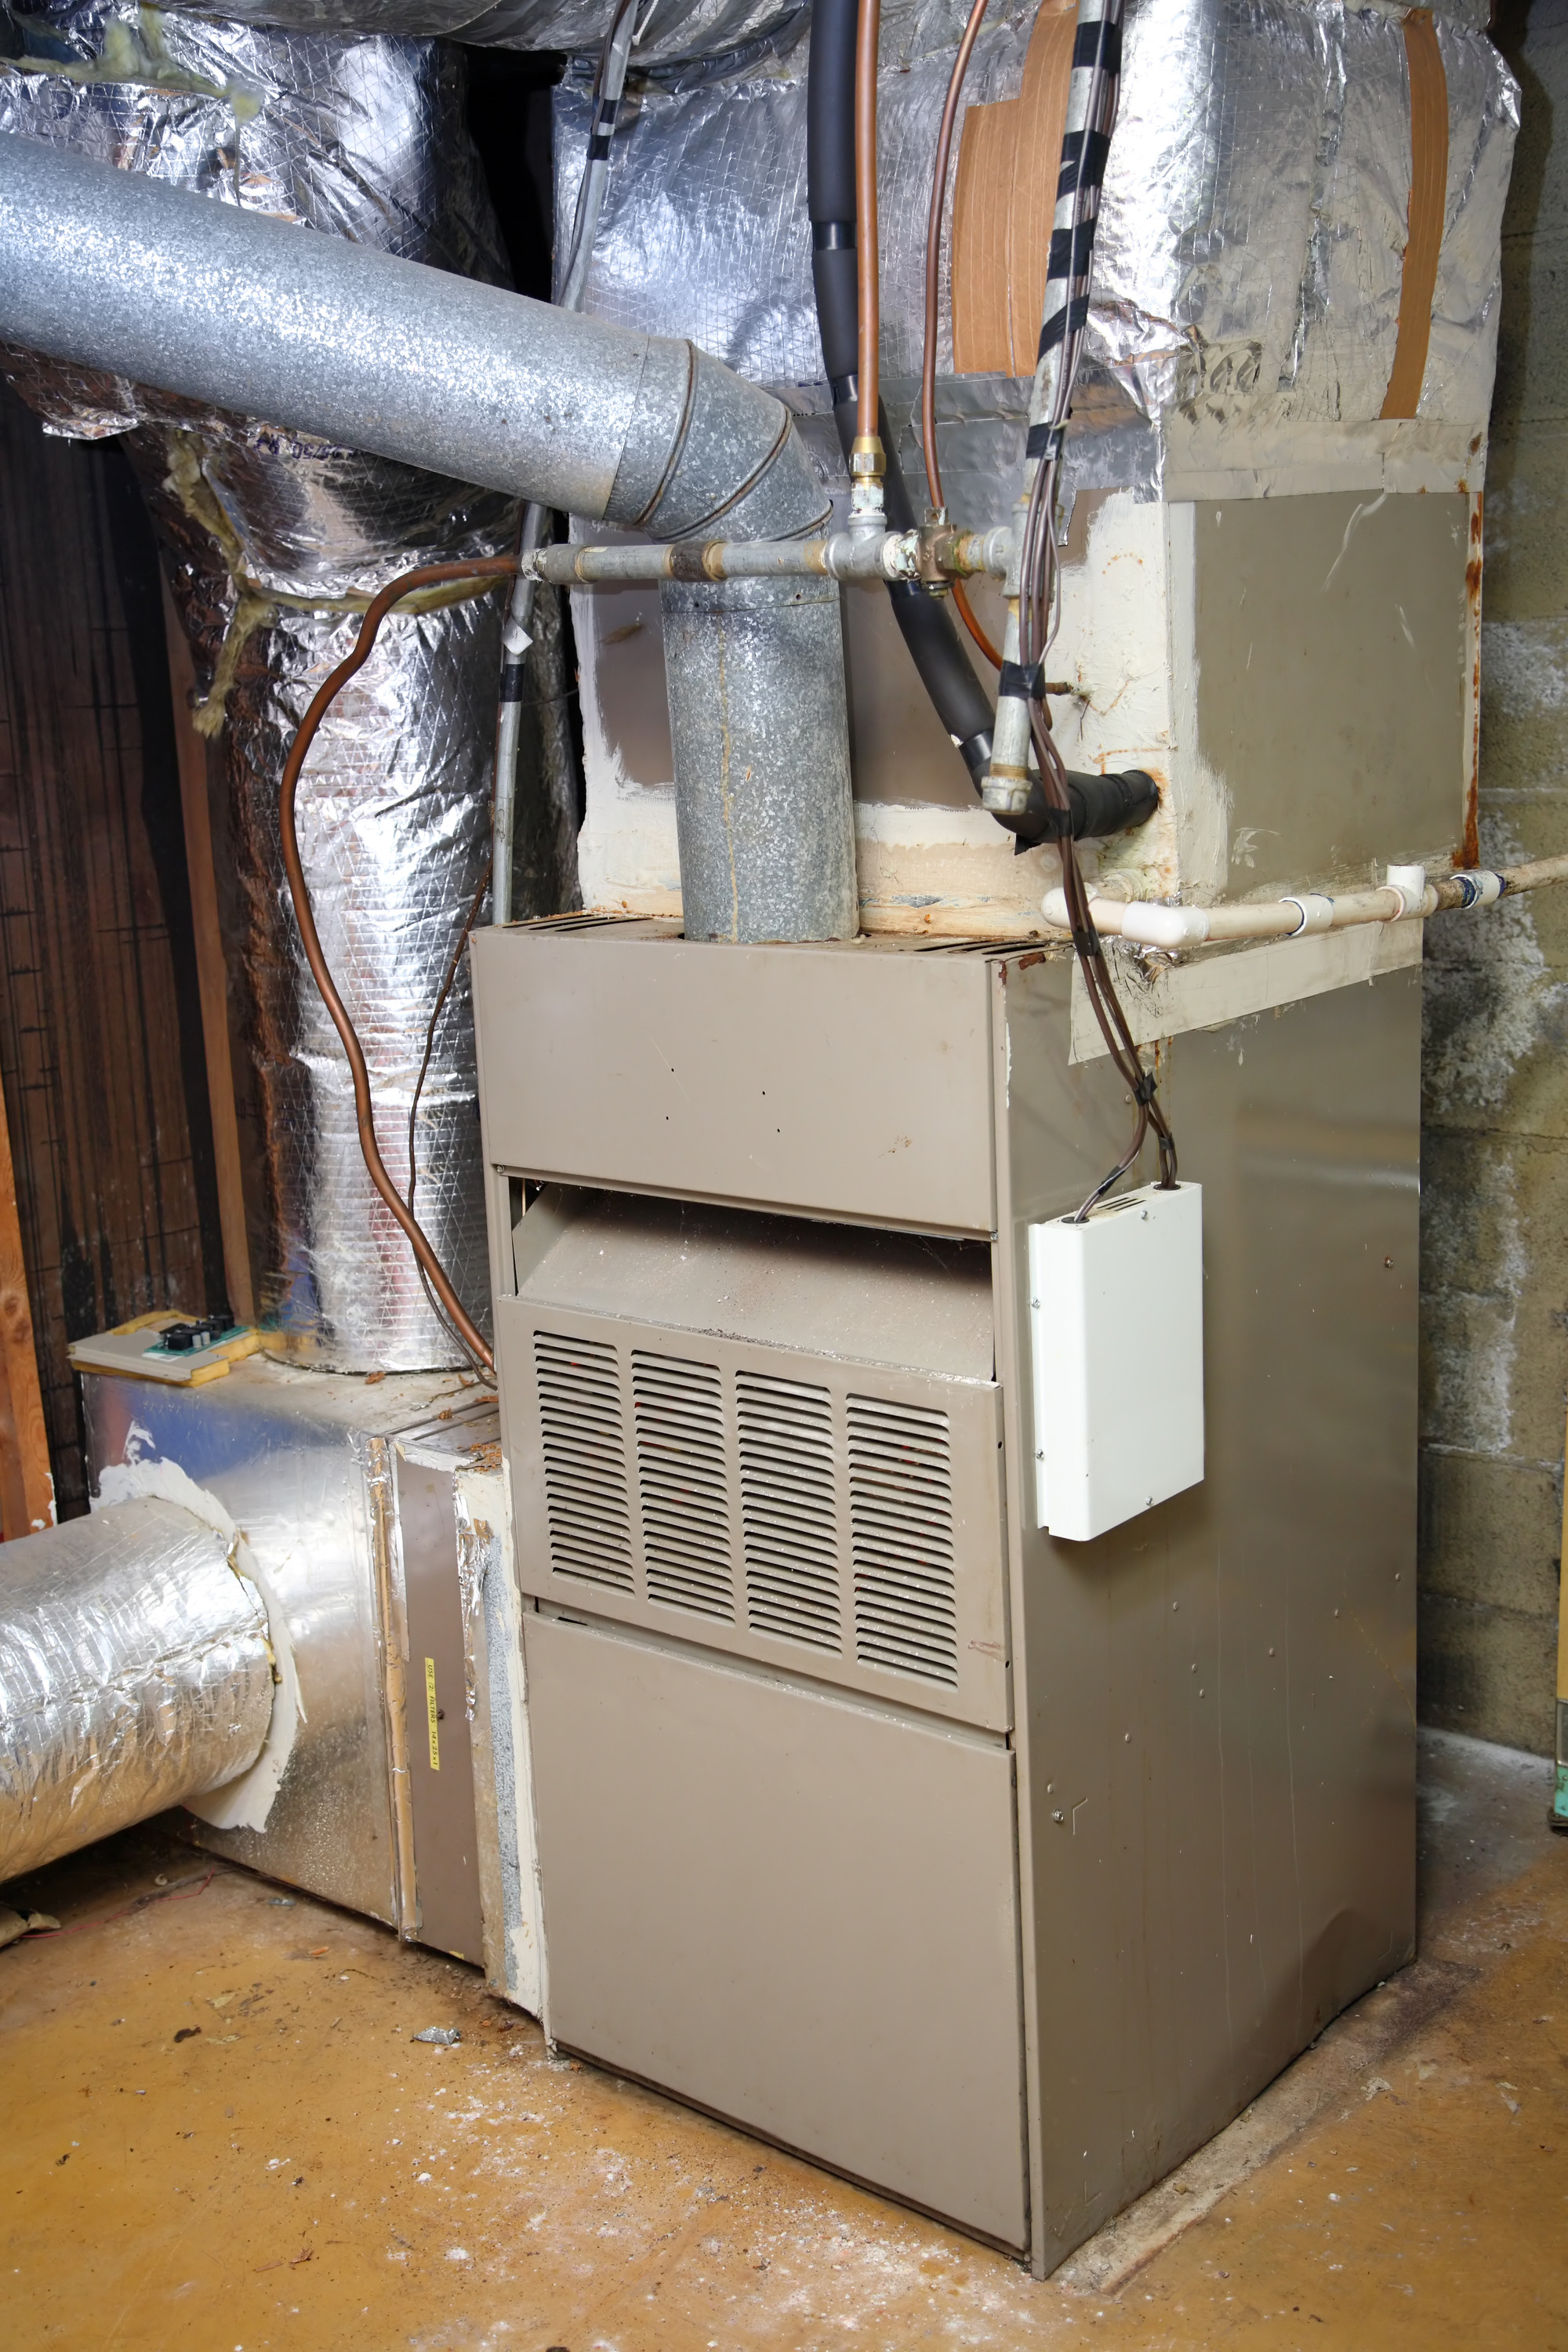 hight resolution of old gas furnace canstockphoto5762916